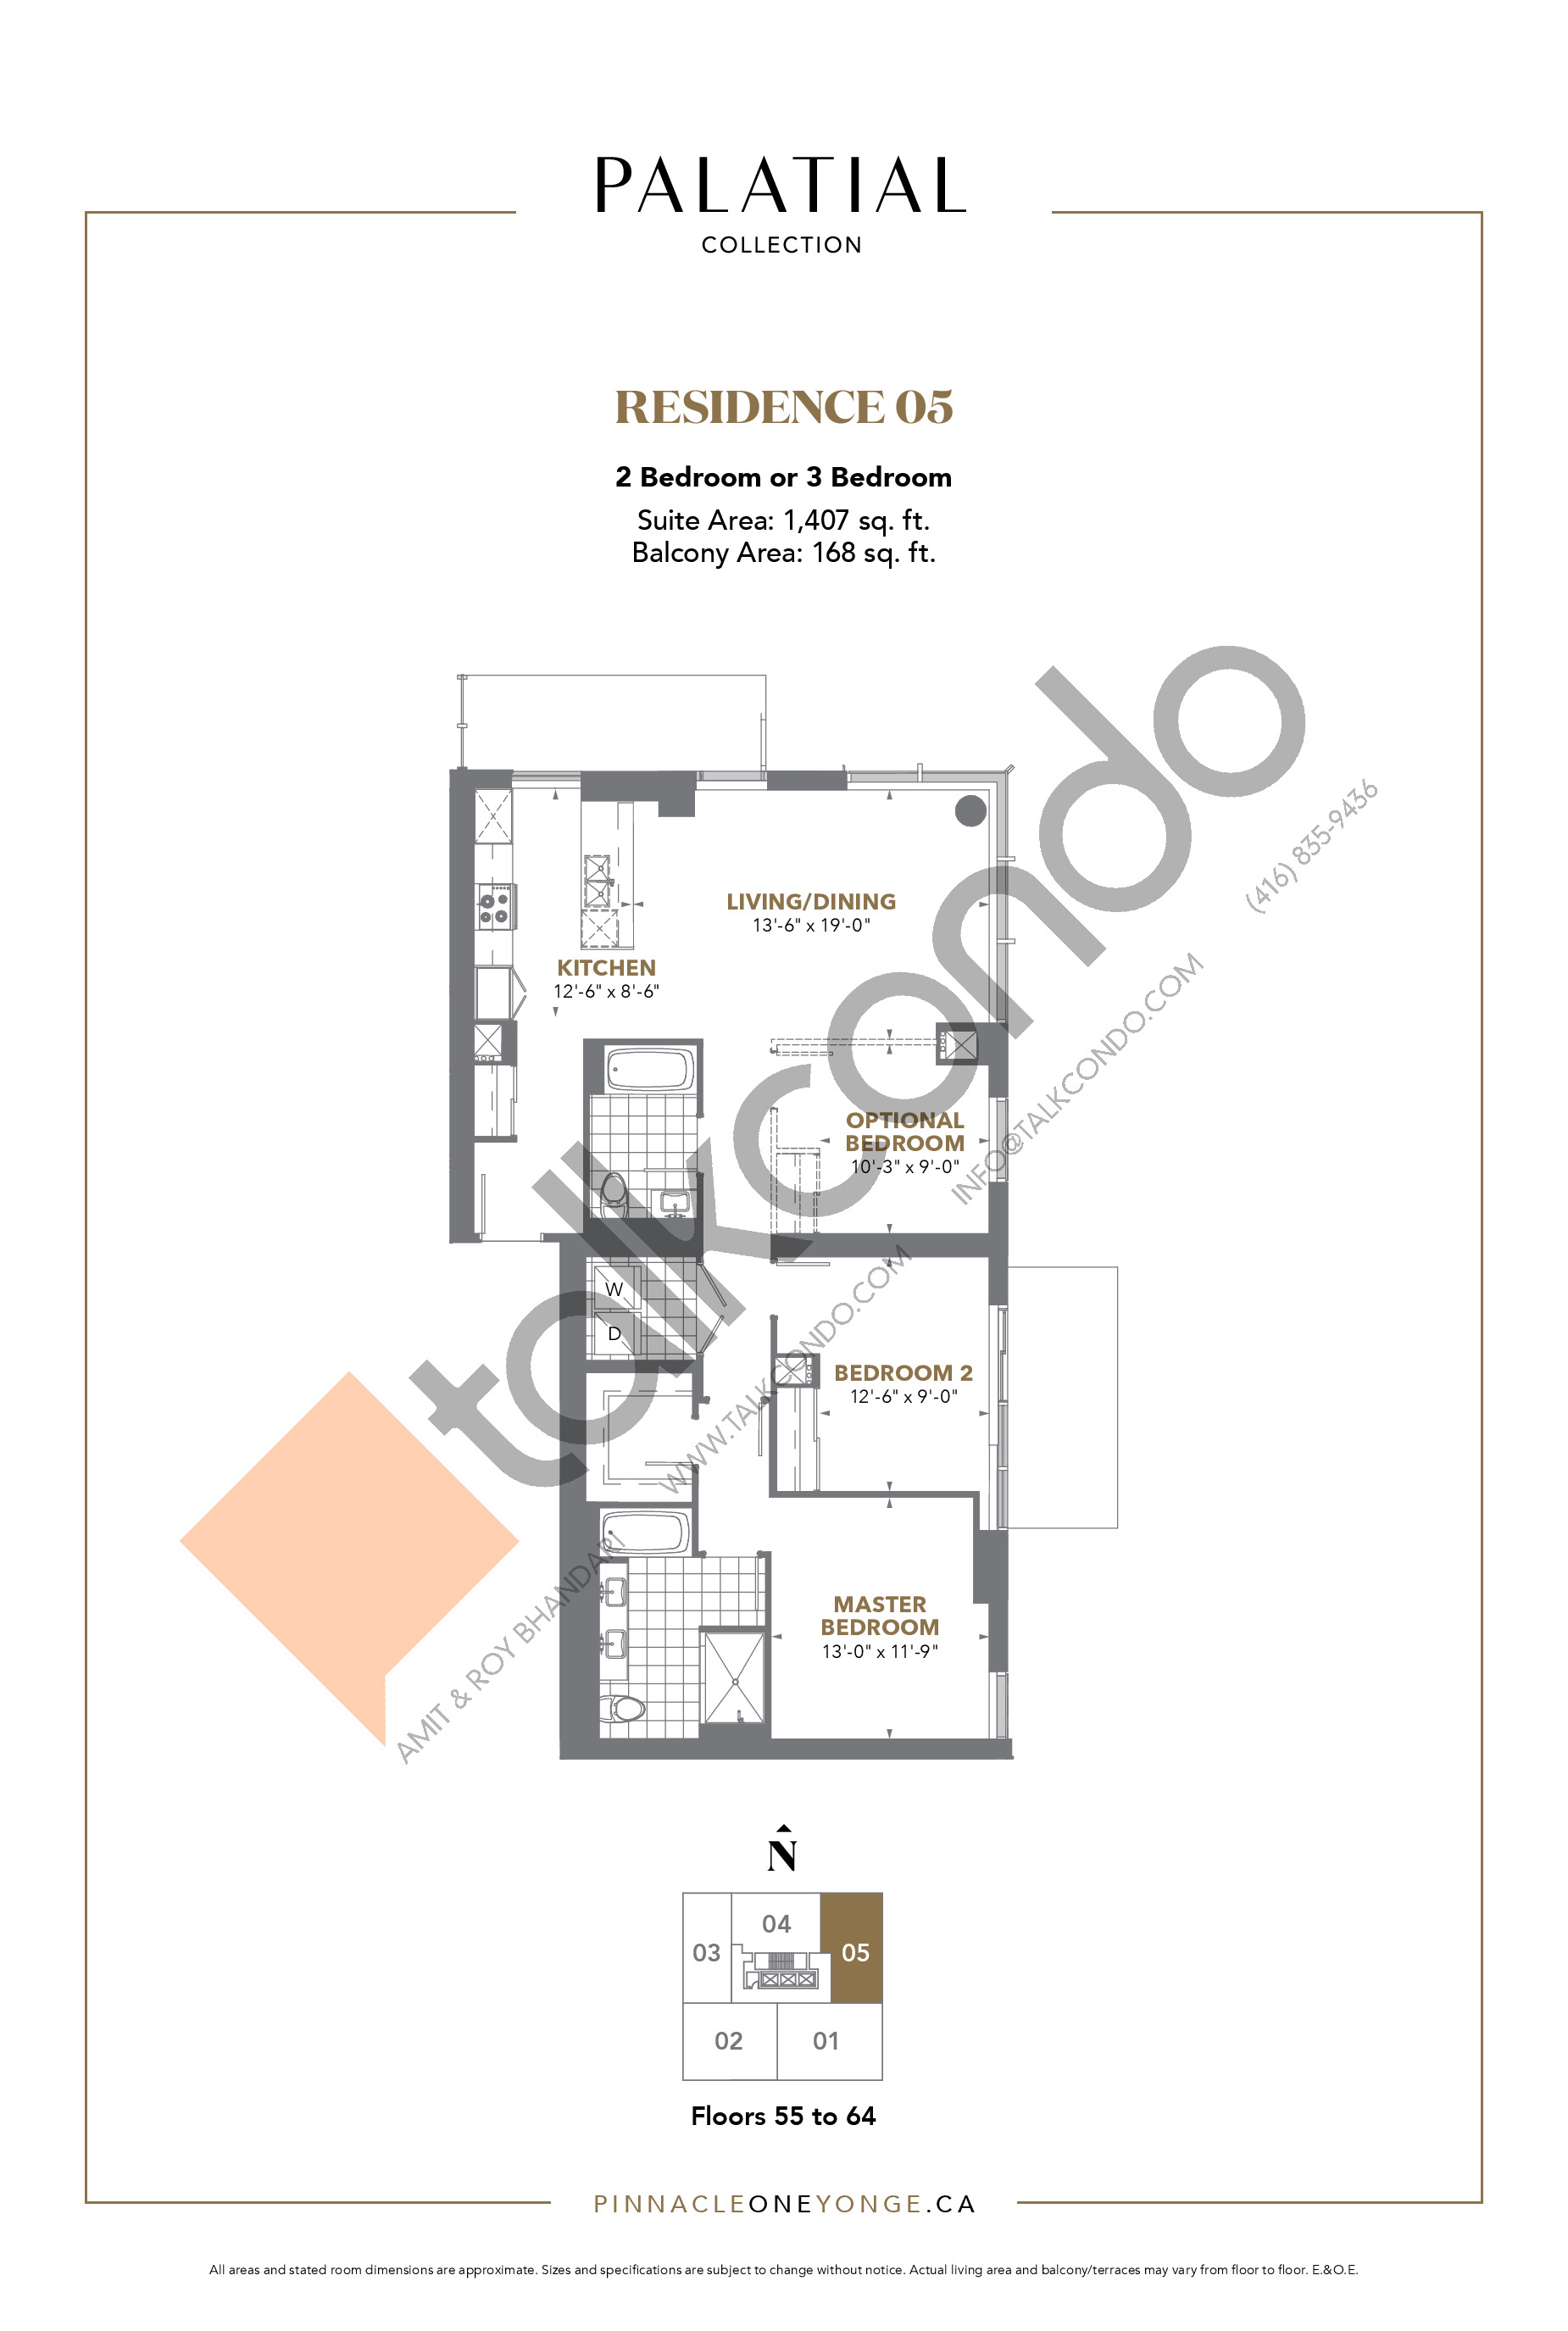 Palatial Collection - Residence 05 Floor Plan at The Prestige Condos at Pinnacle One Yonge - 1407 sq.ft